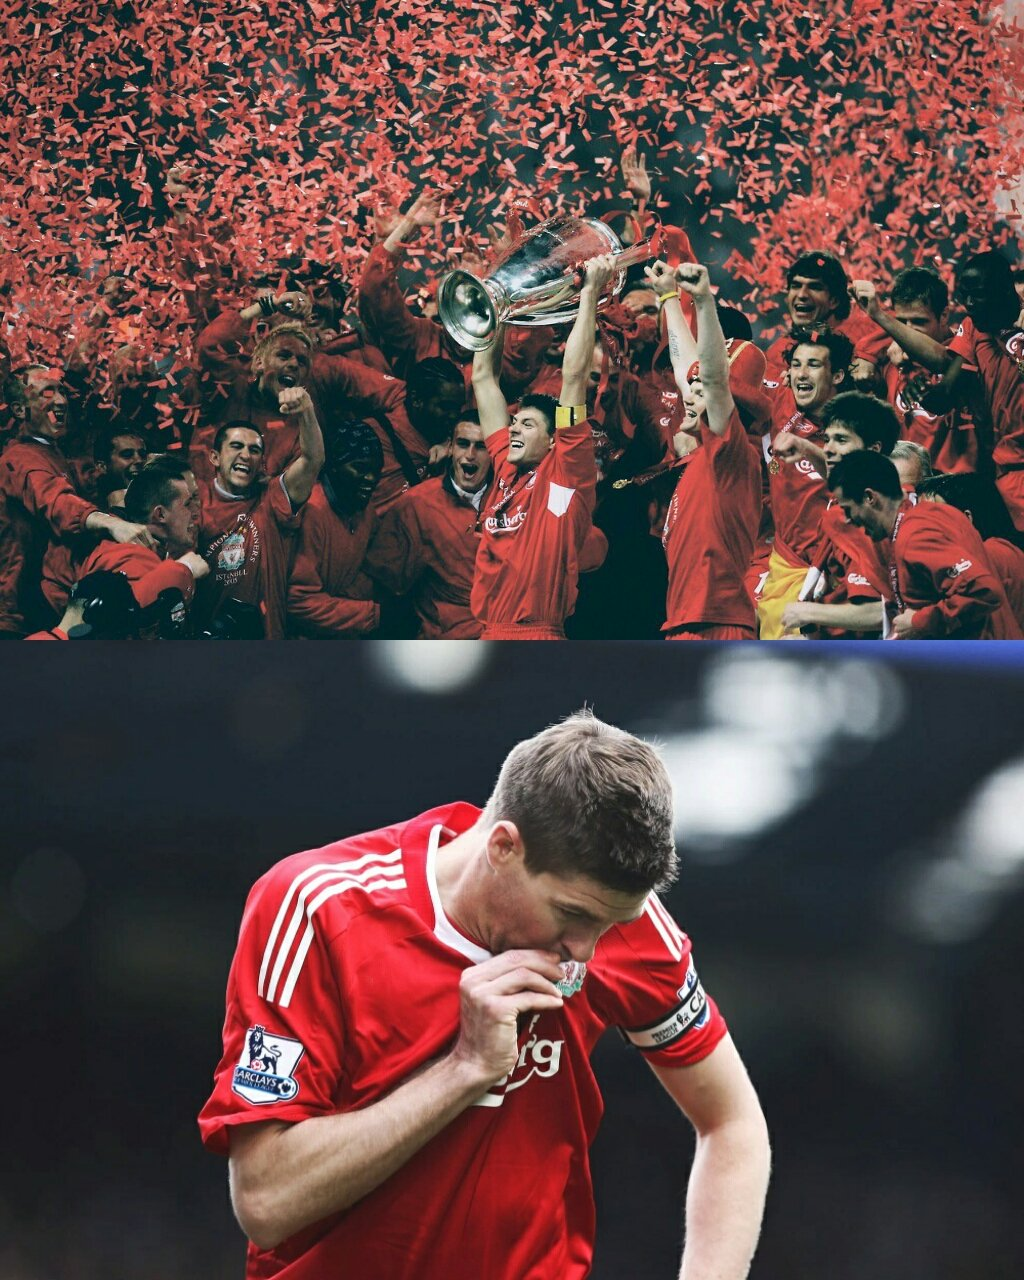 HAPPY BIRTHDAY STEVEN GERRARD